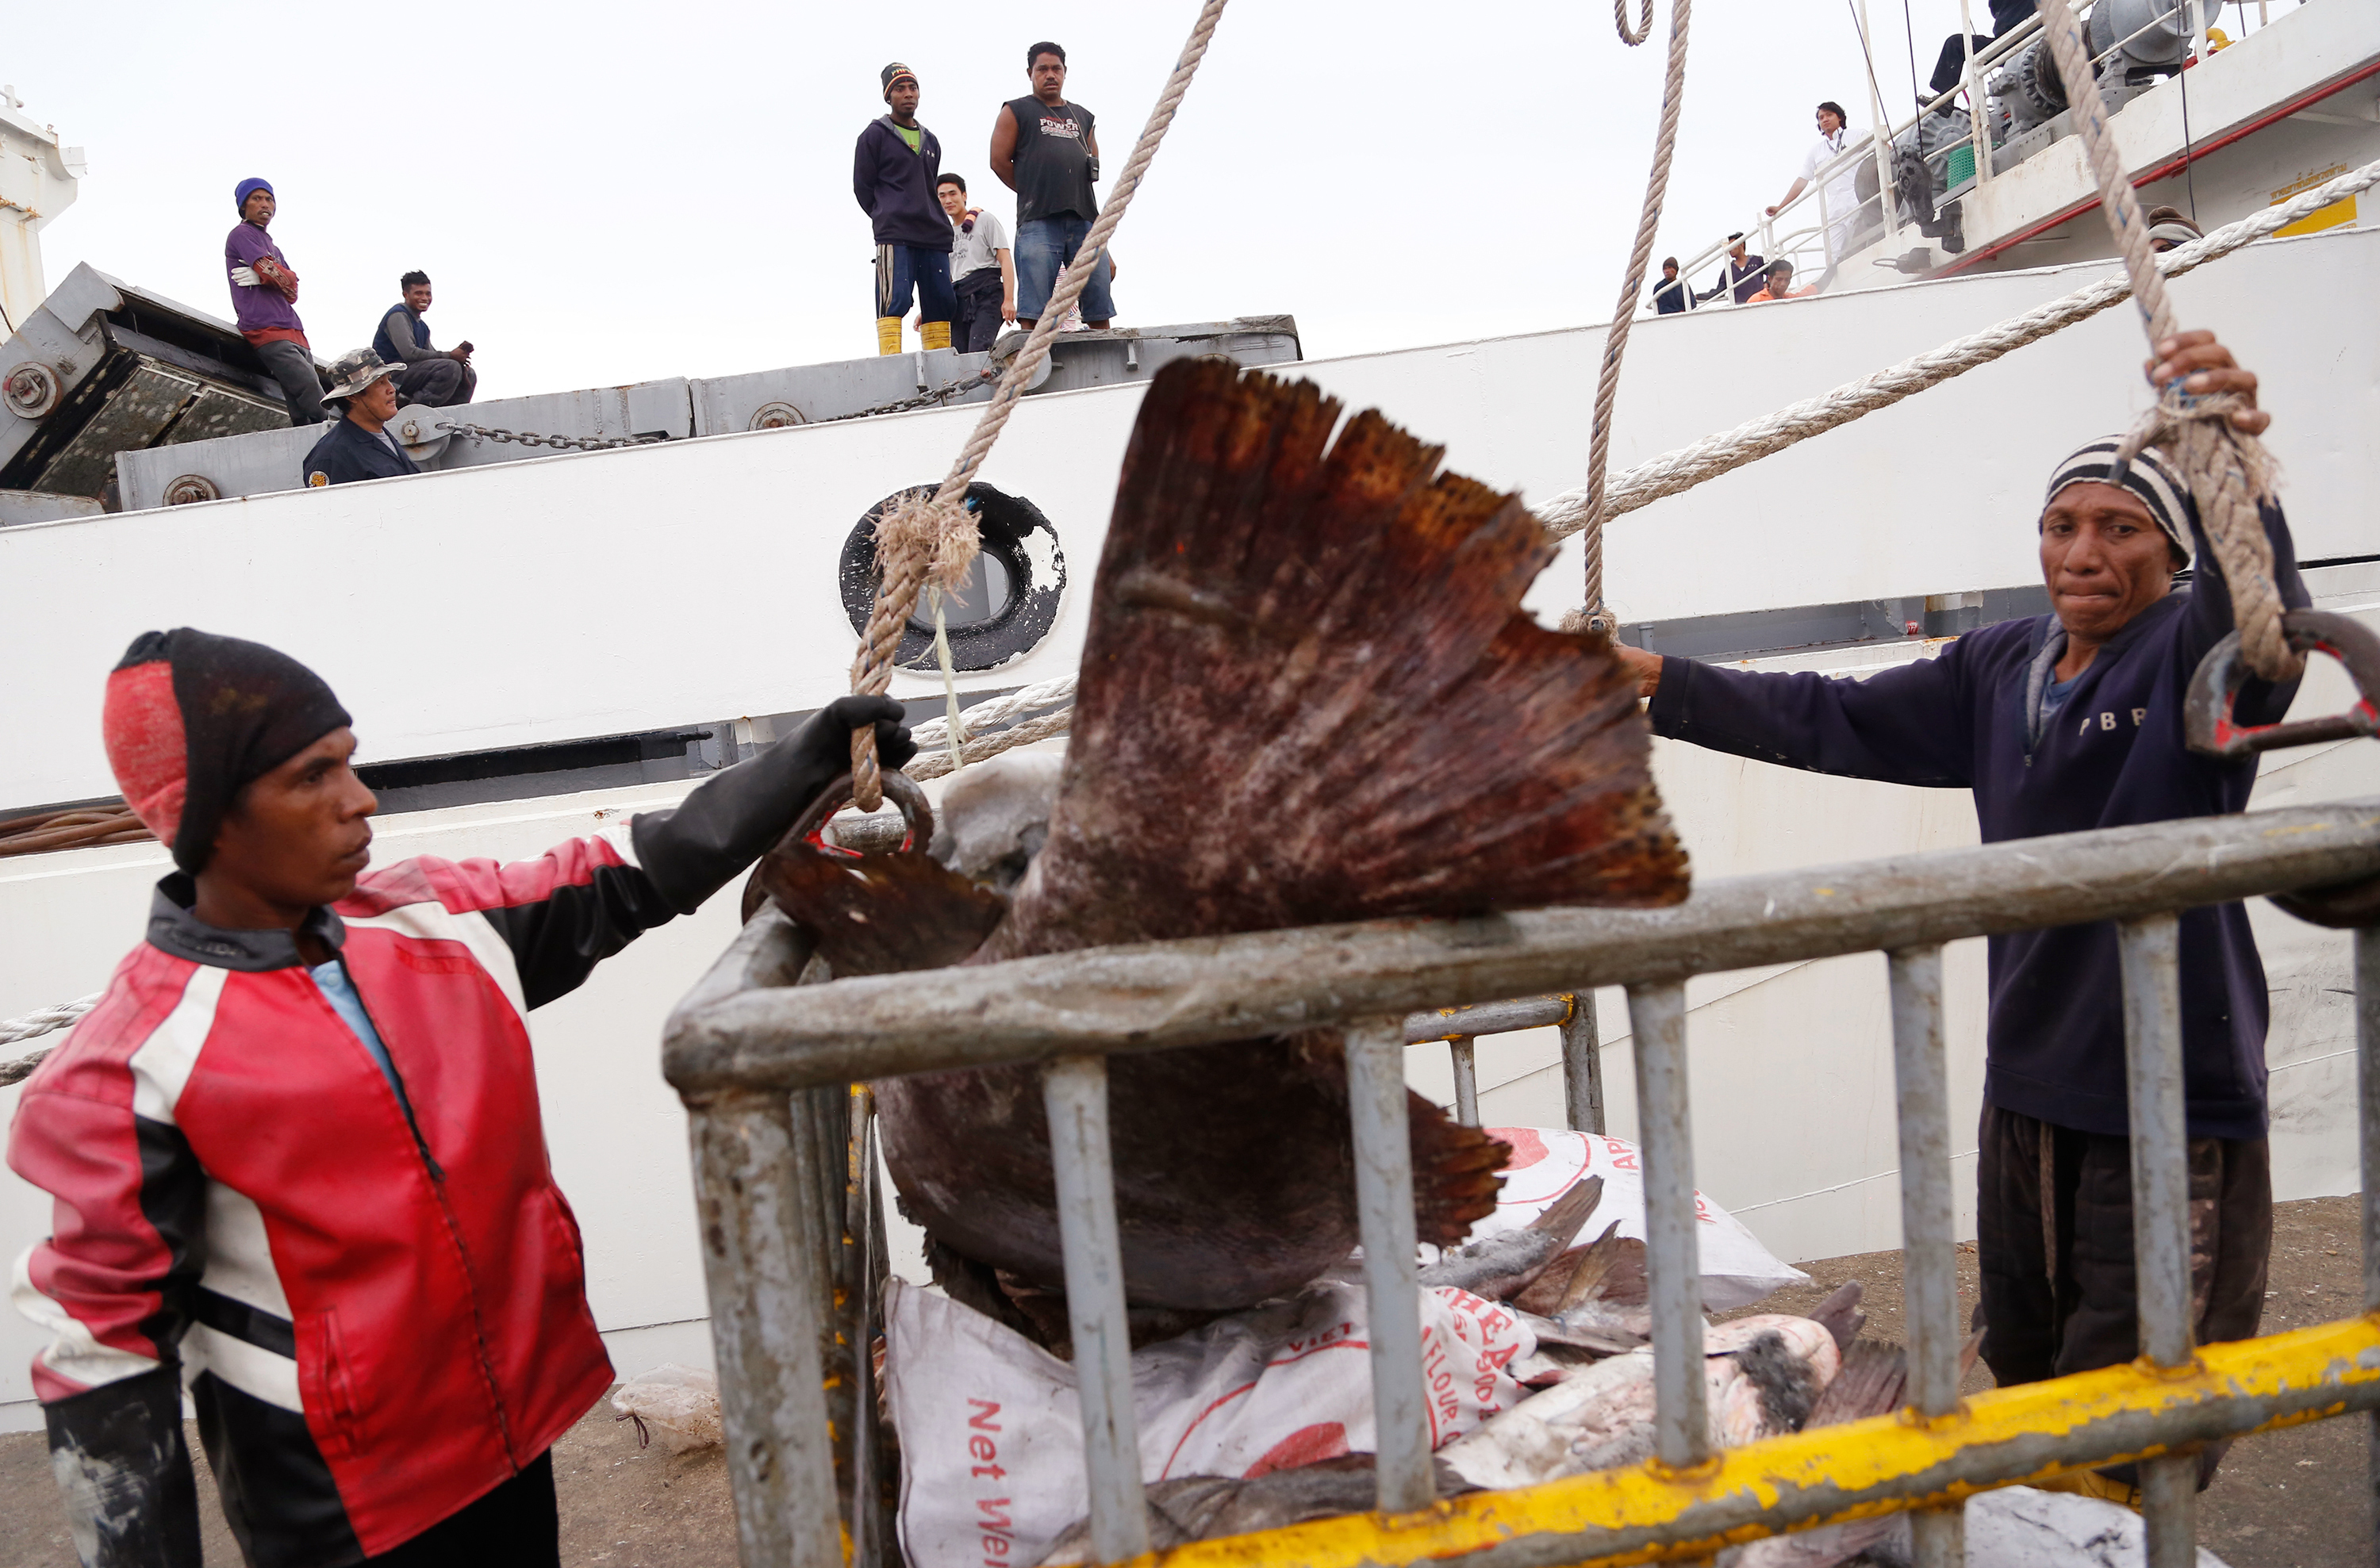 Workers in Benjina, Indonesia, load fish into a cargo ship